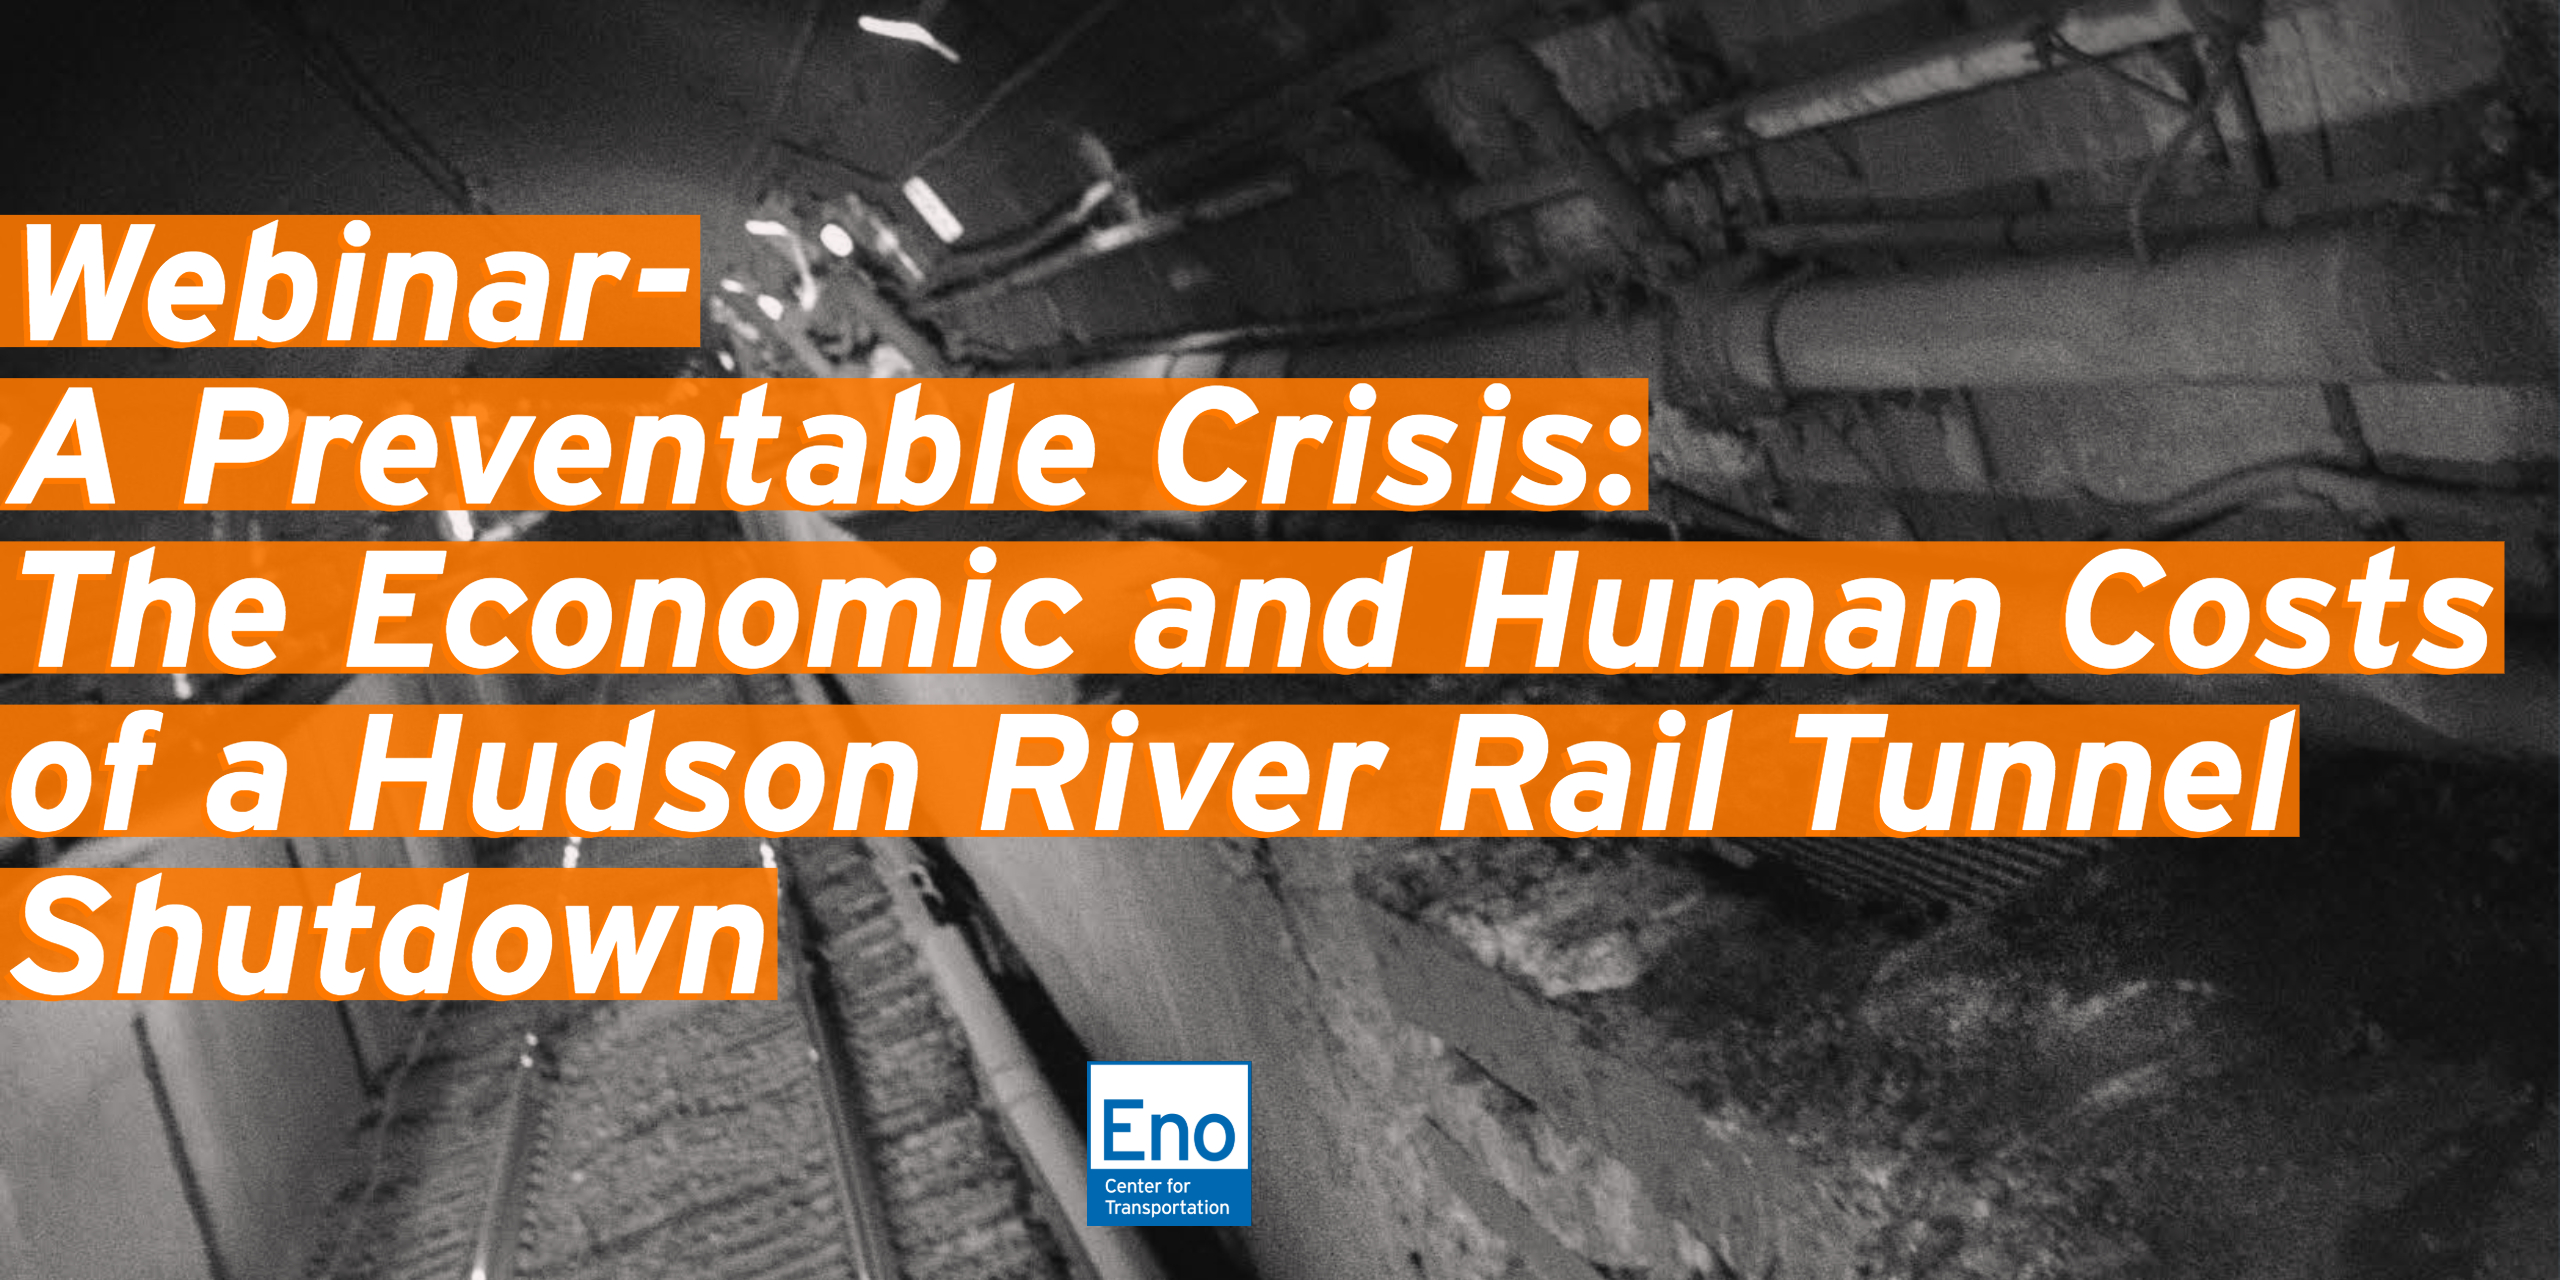 Webinar: A Preventable Crisis - The Costs of a Hudson Tunnel Shutdown